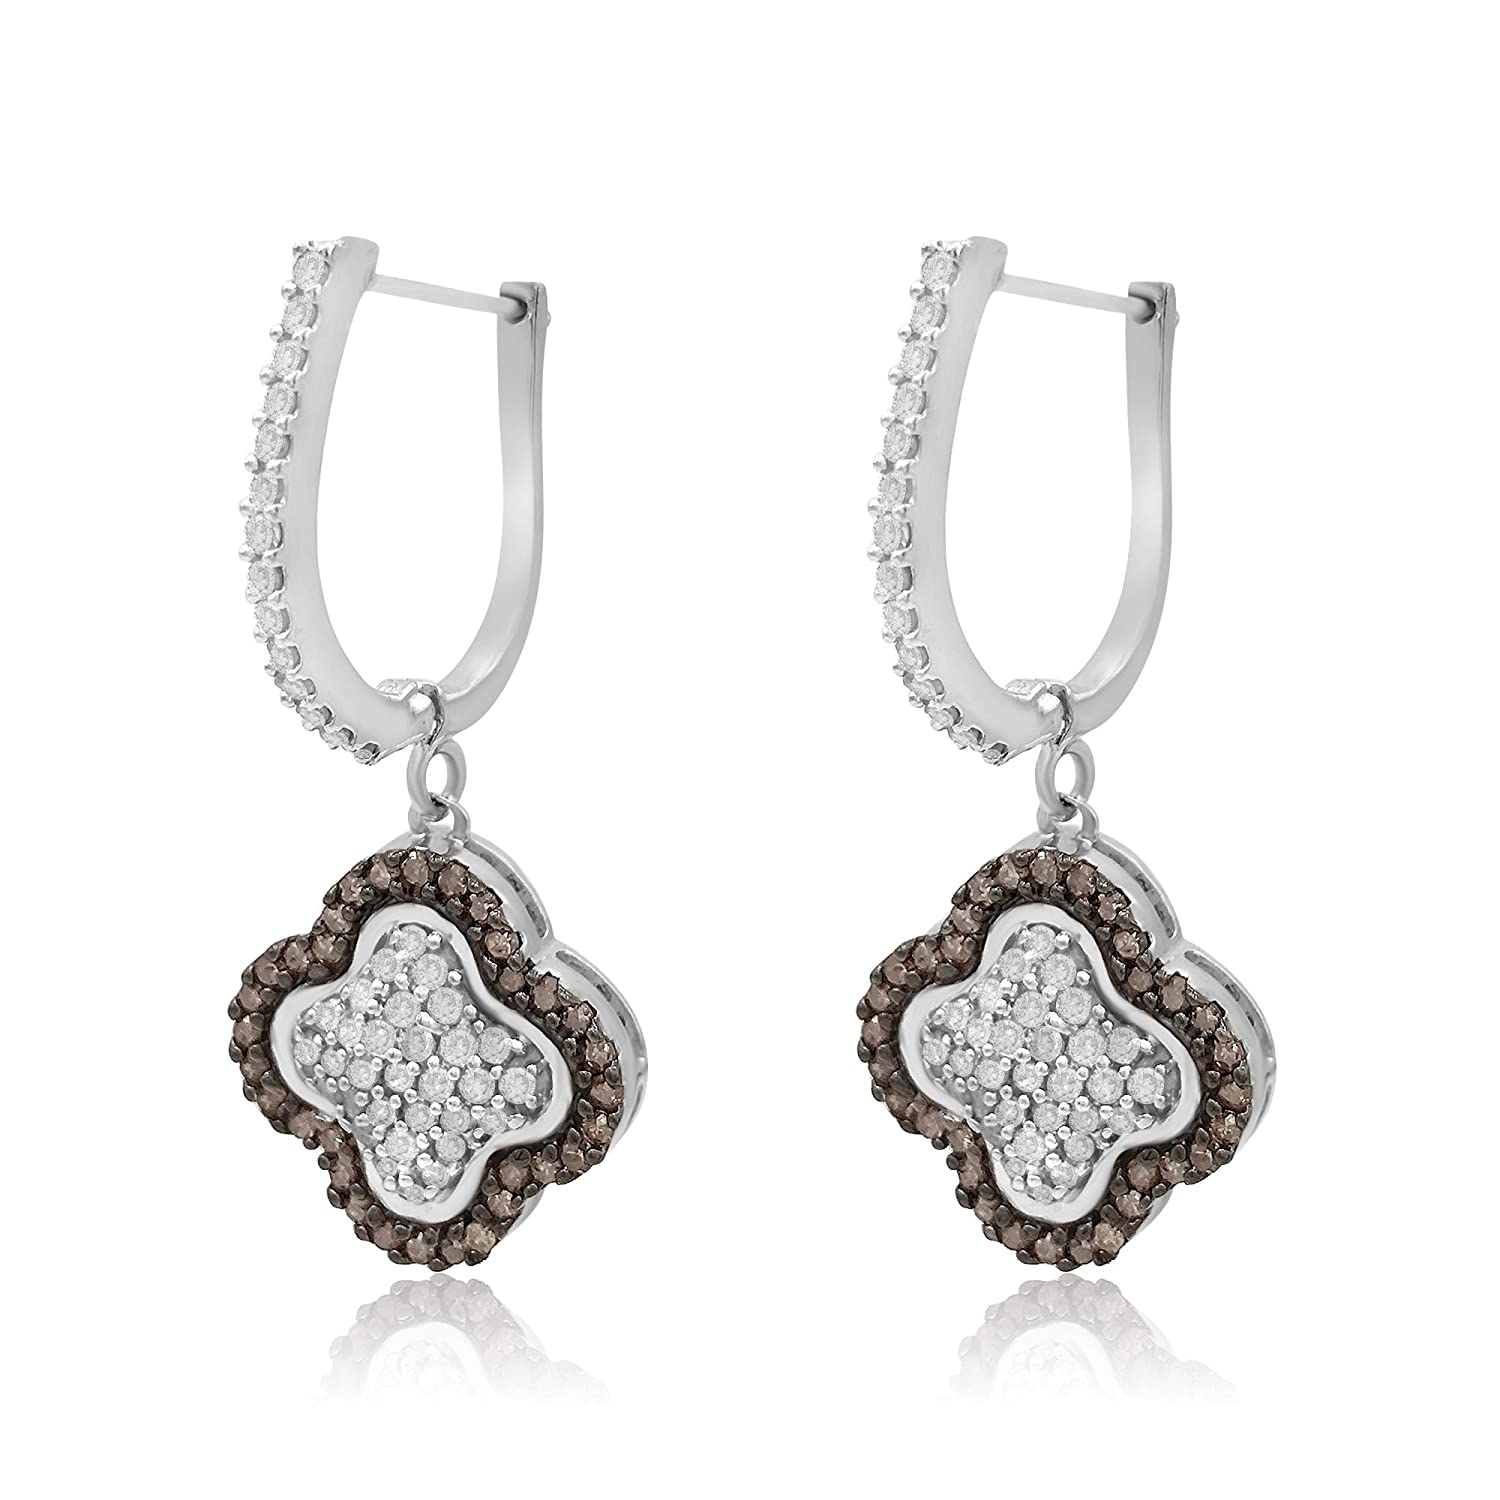 1.62 Cttw Round Cut White /& Brown Natural Diamond Clover Drop Dangle Earrings in Sterling Silver